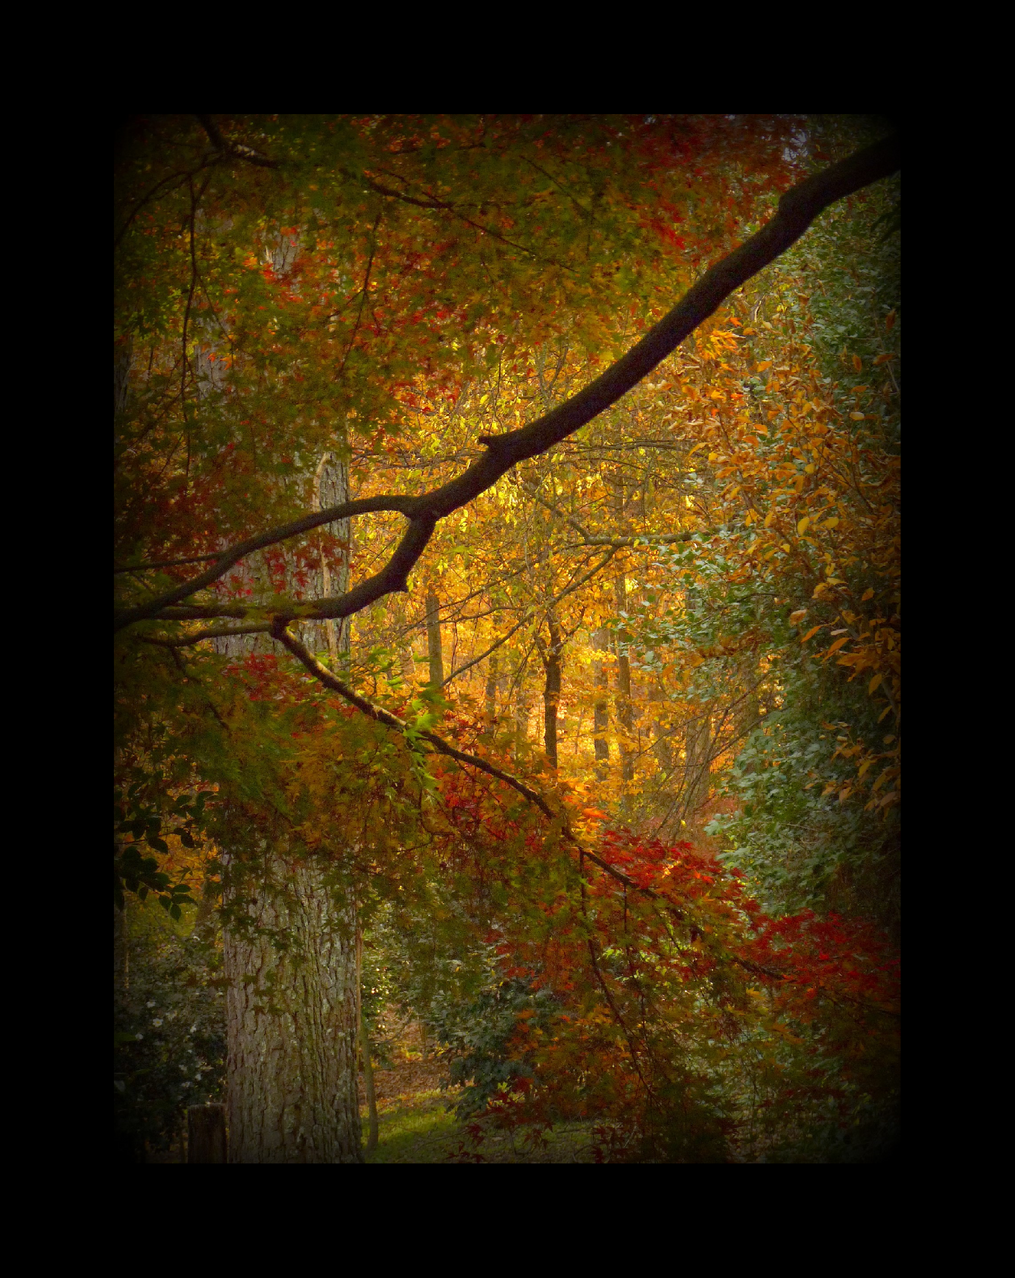 Fall, window into color